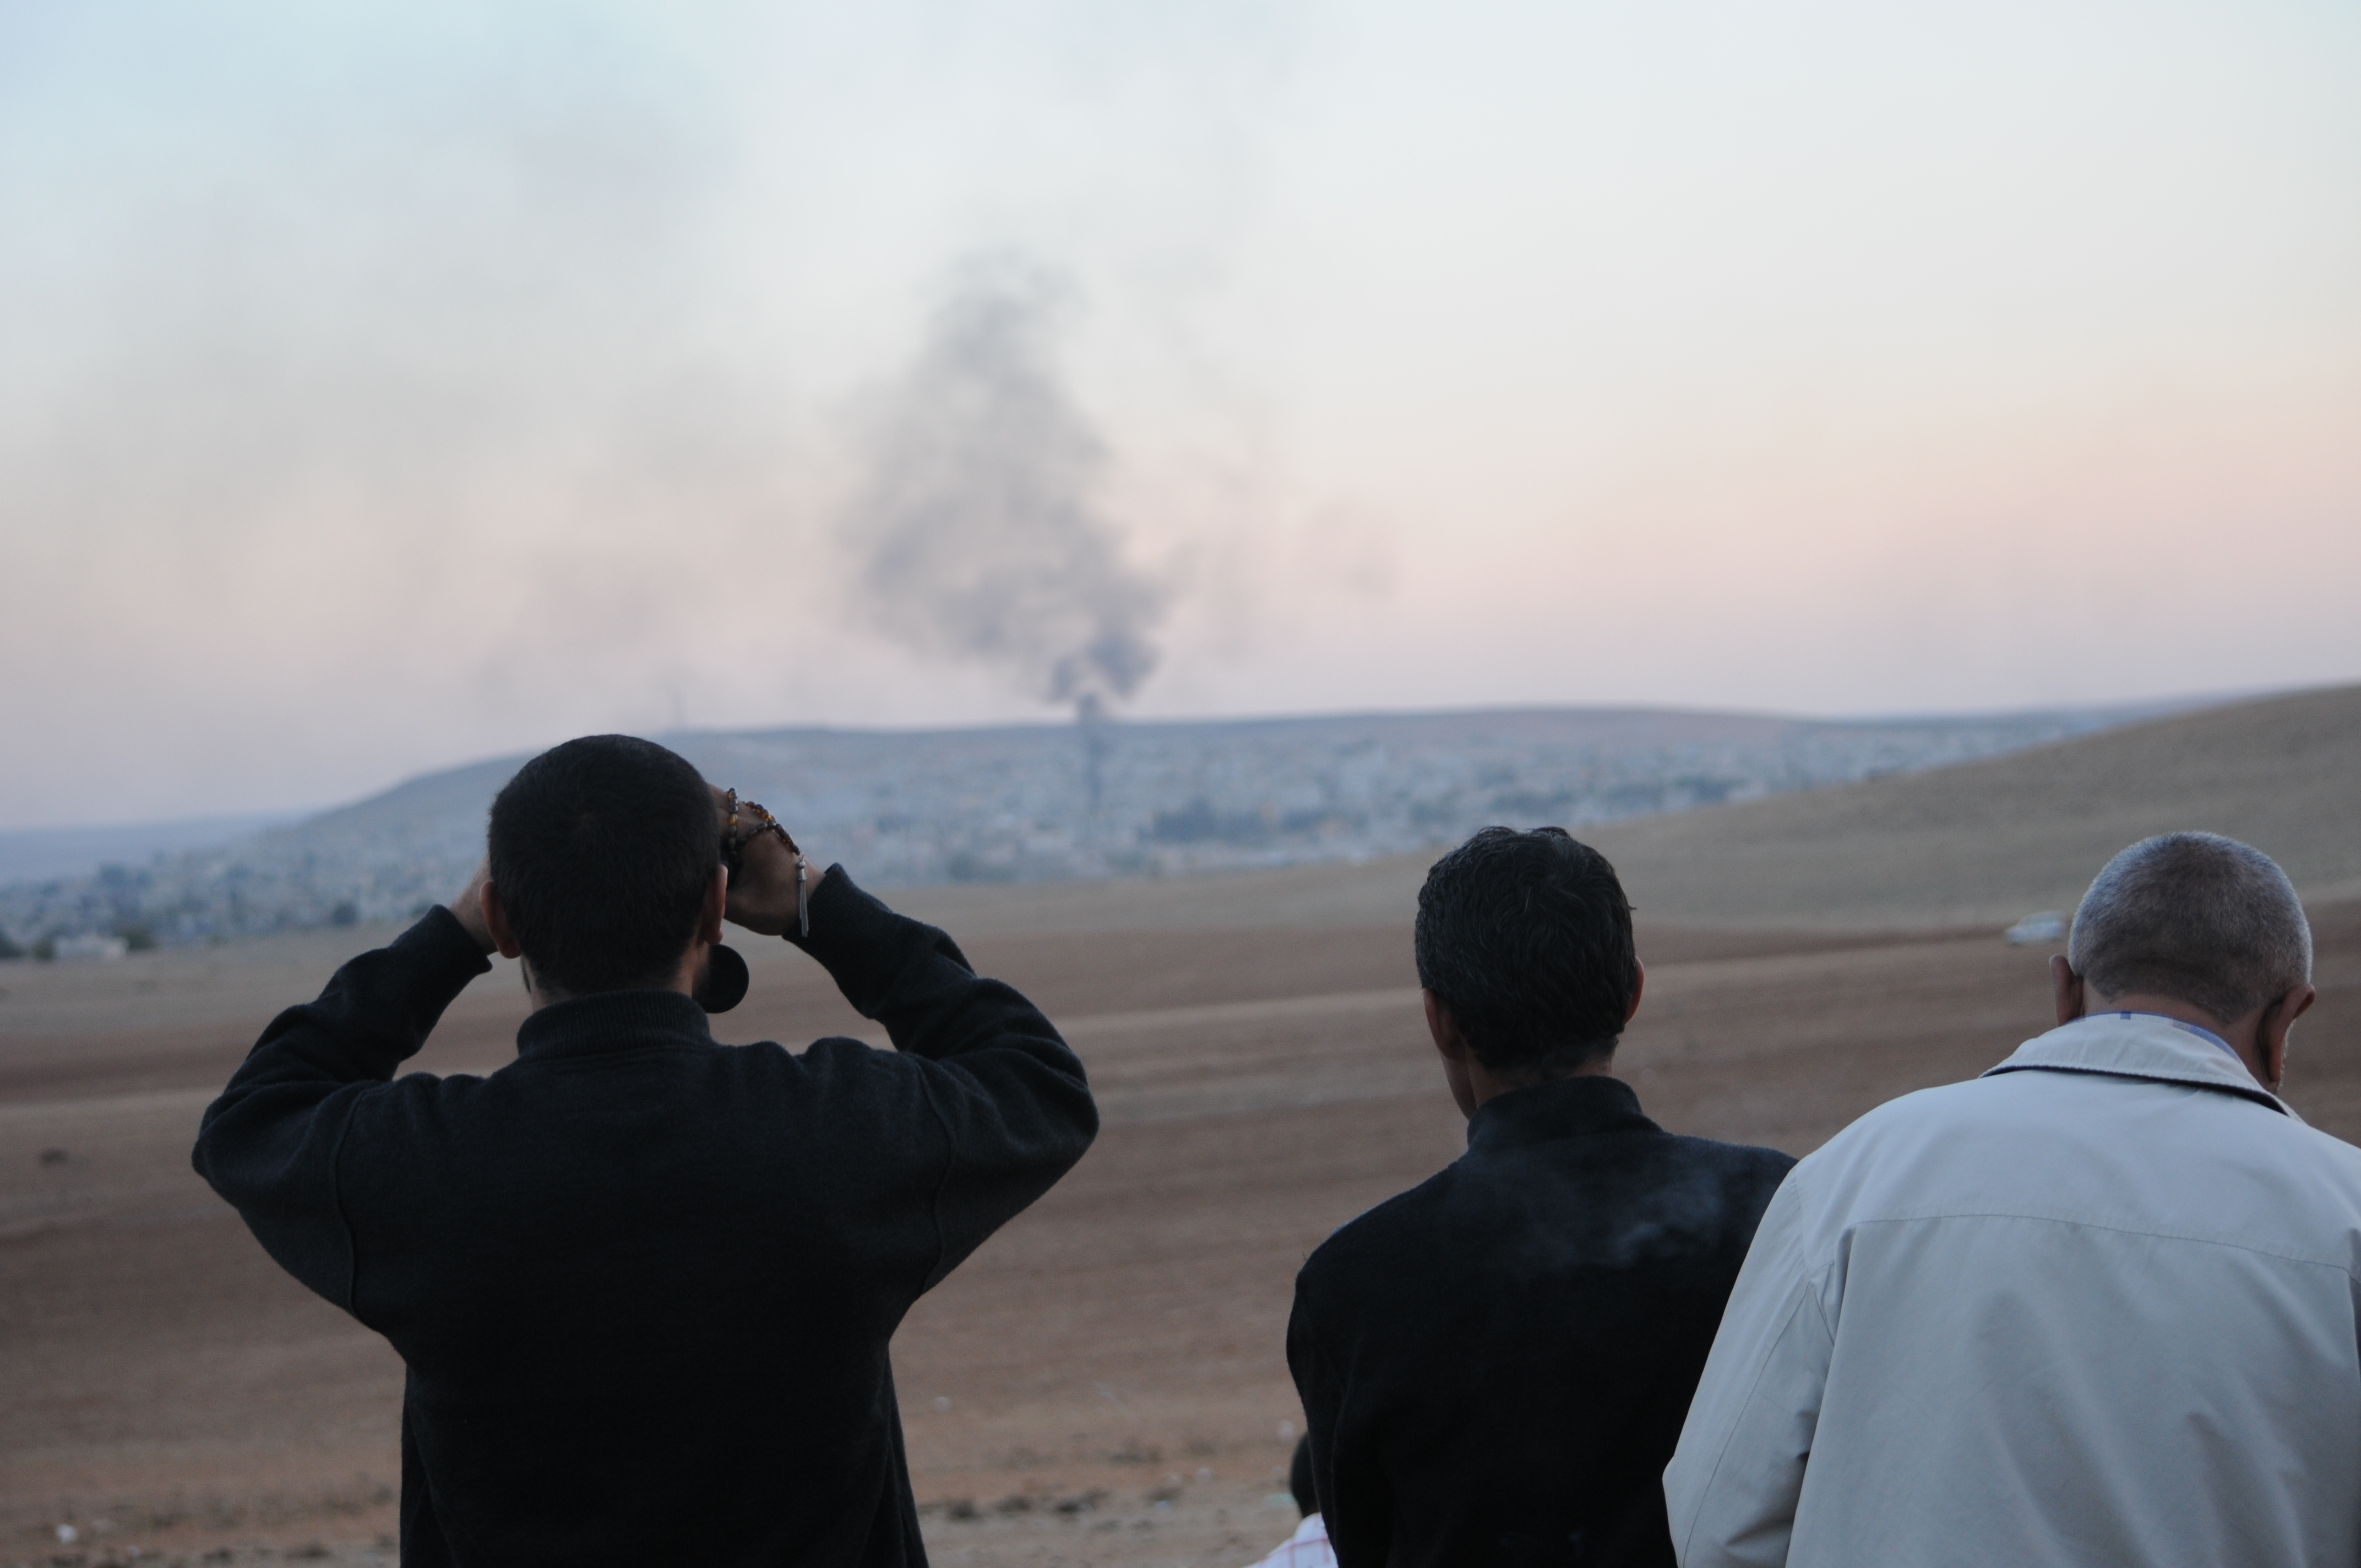 Groups of Kurdish men look at the siege of the Syrian town of Kobane from the Turkish border.